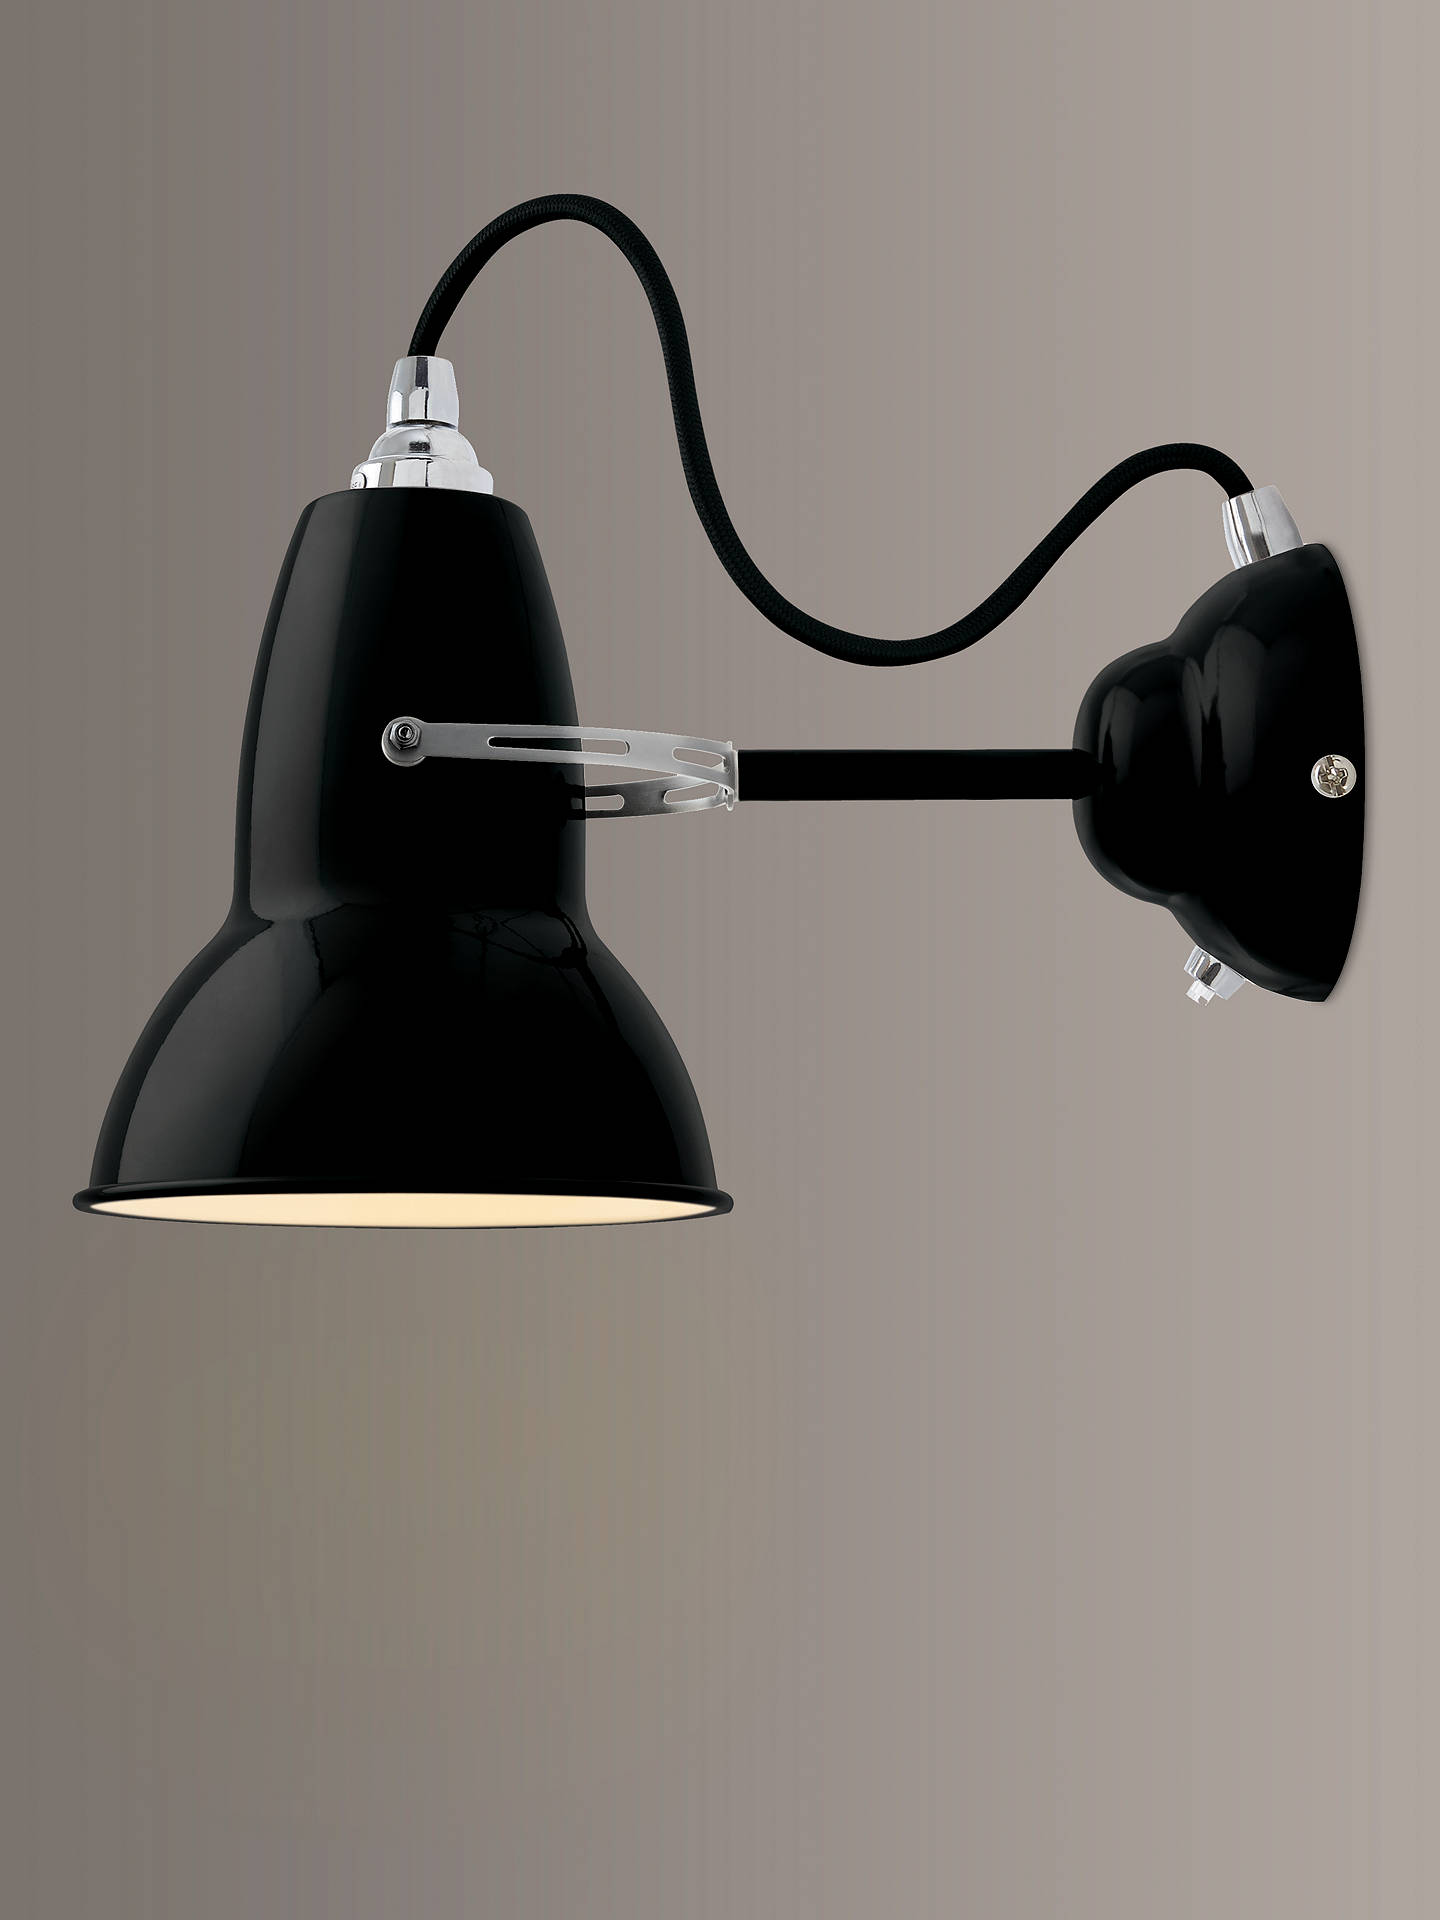 BuyAnglepoise Original 1227 Wall Light, Black Online at johnlewis.com